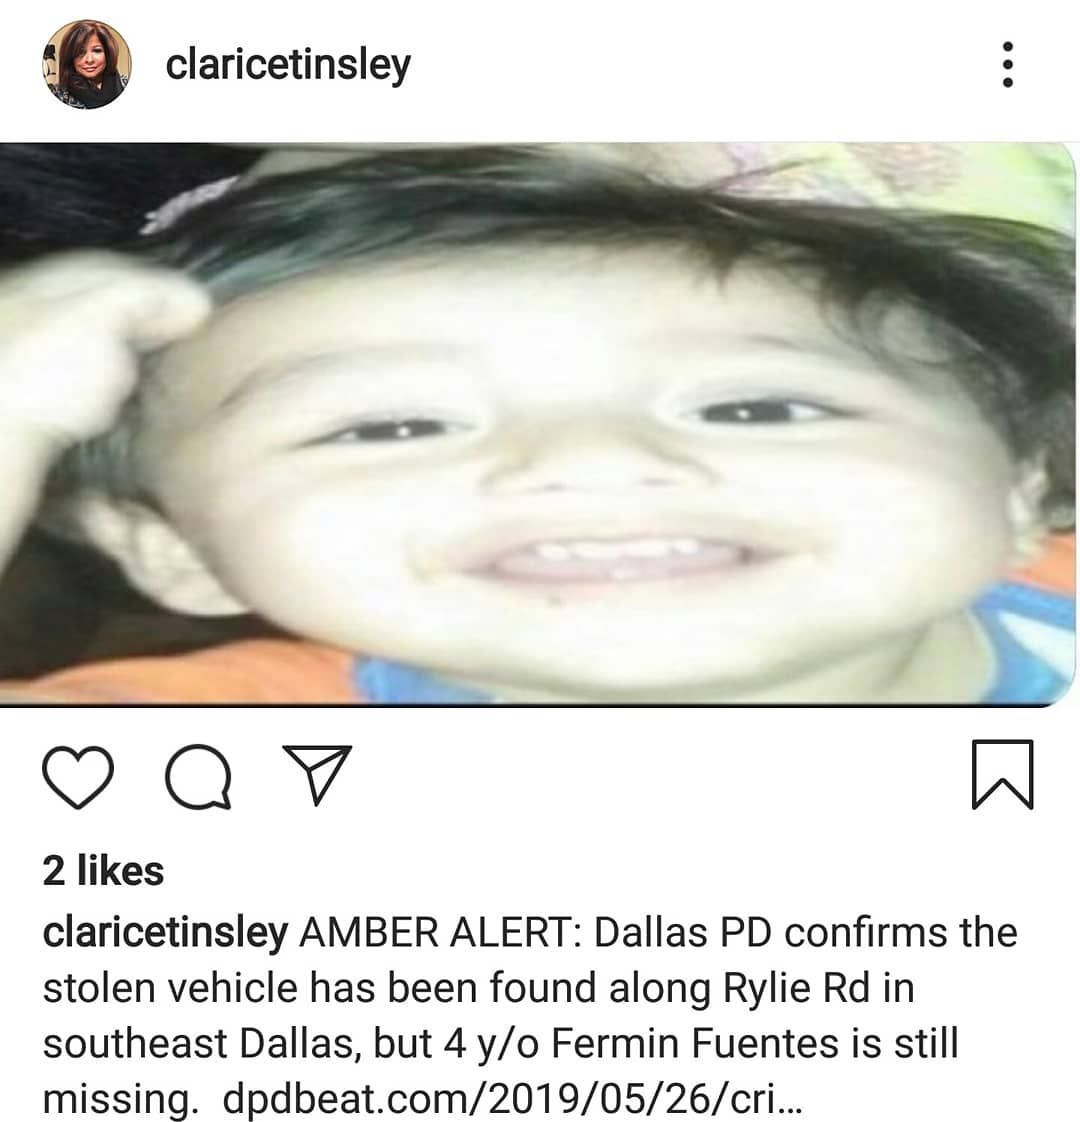 Update Cancelled Amber Alert Dallas Texas Hashtags Are Used To Create More Views And Do Not Related To Th Dallas Police Amber Alert Thunderstorms